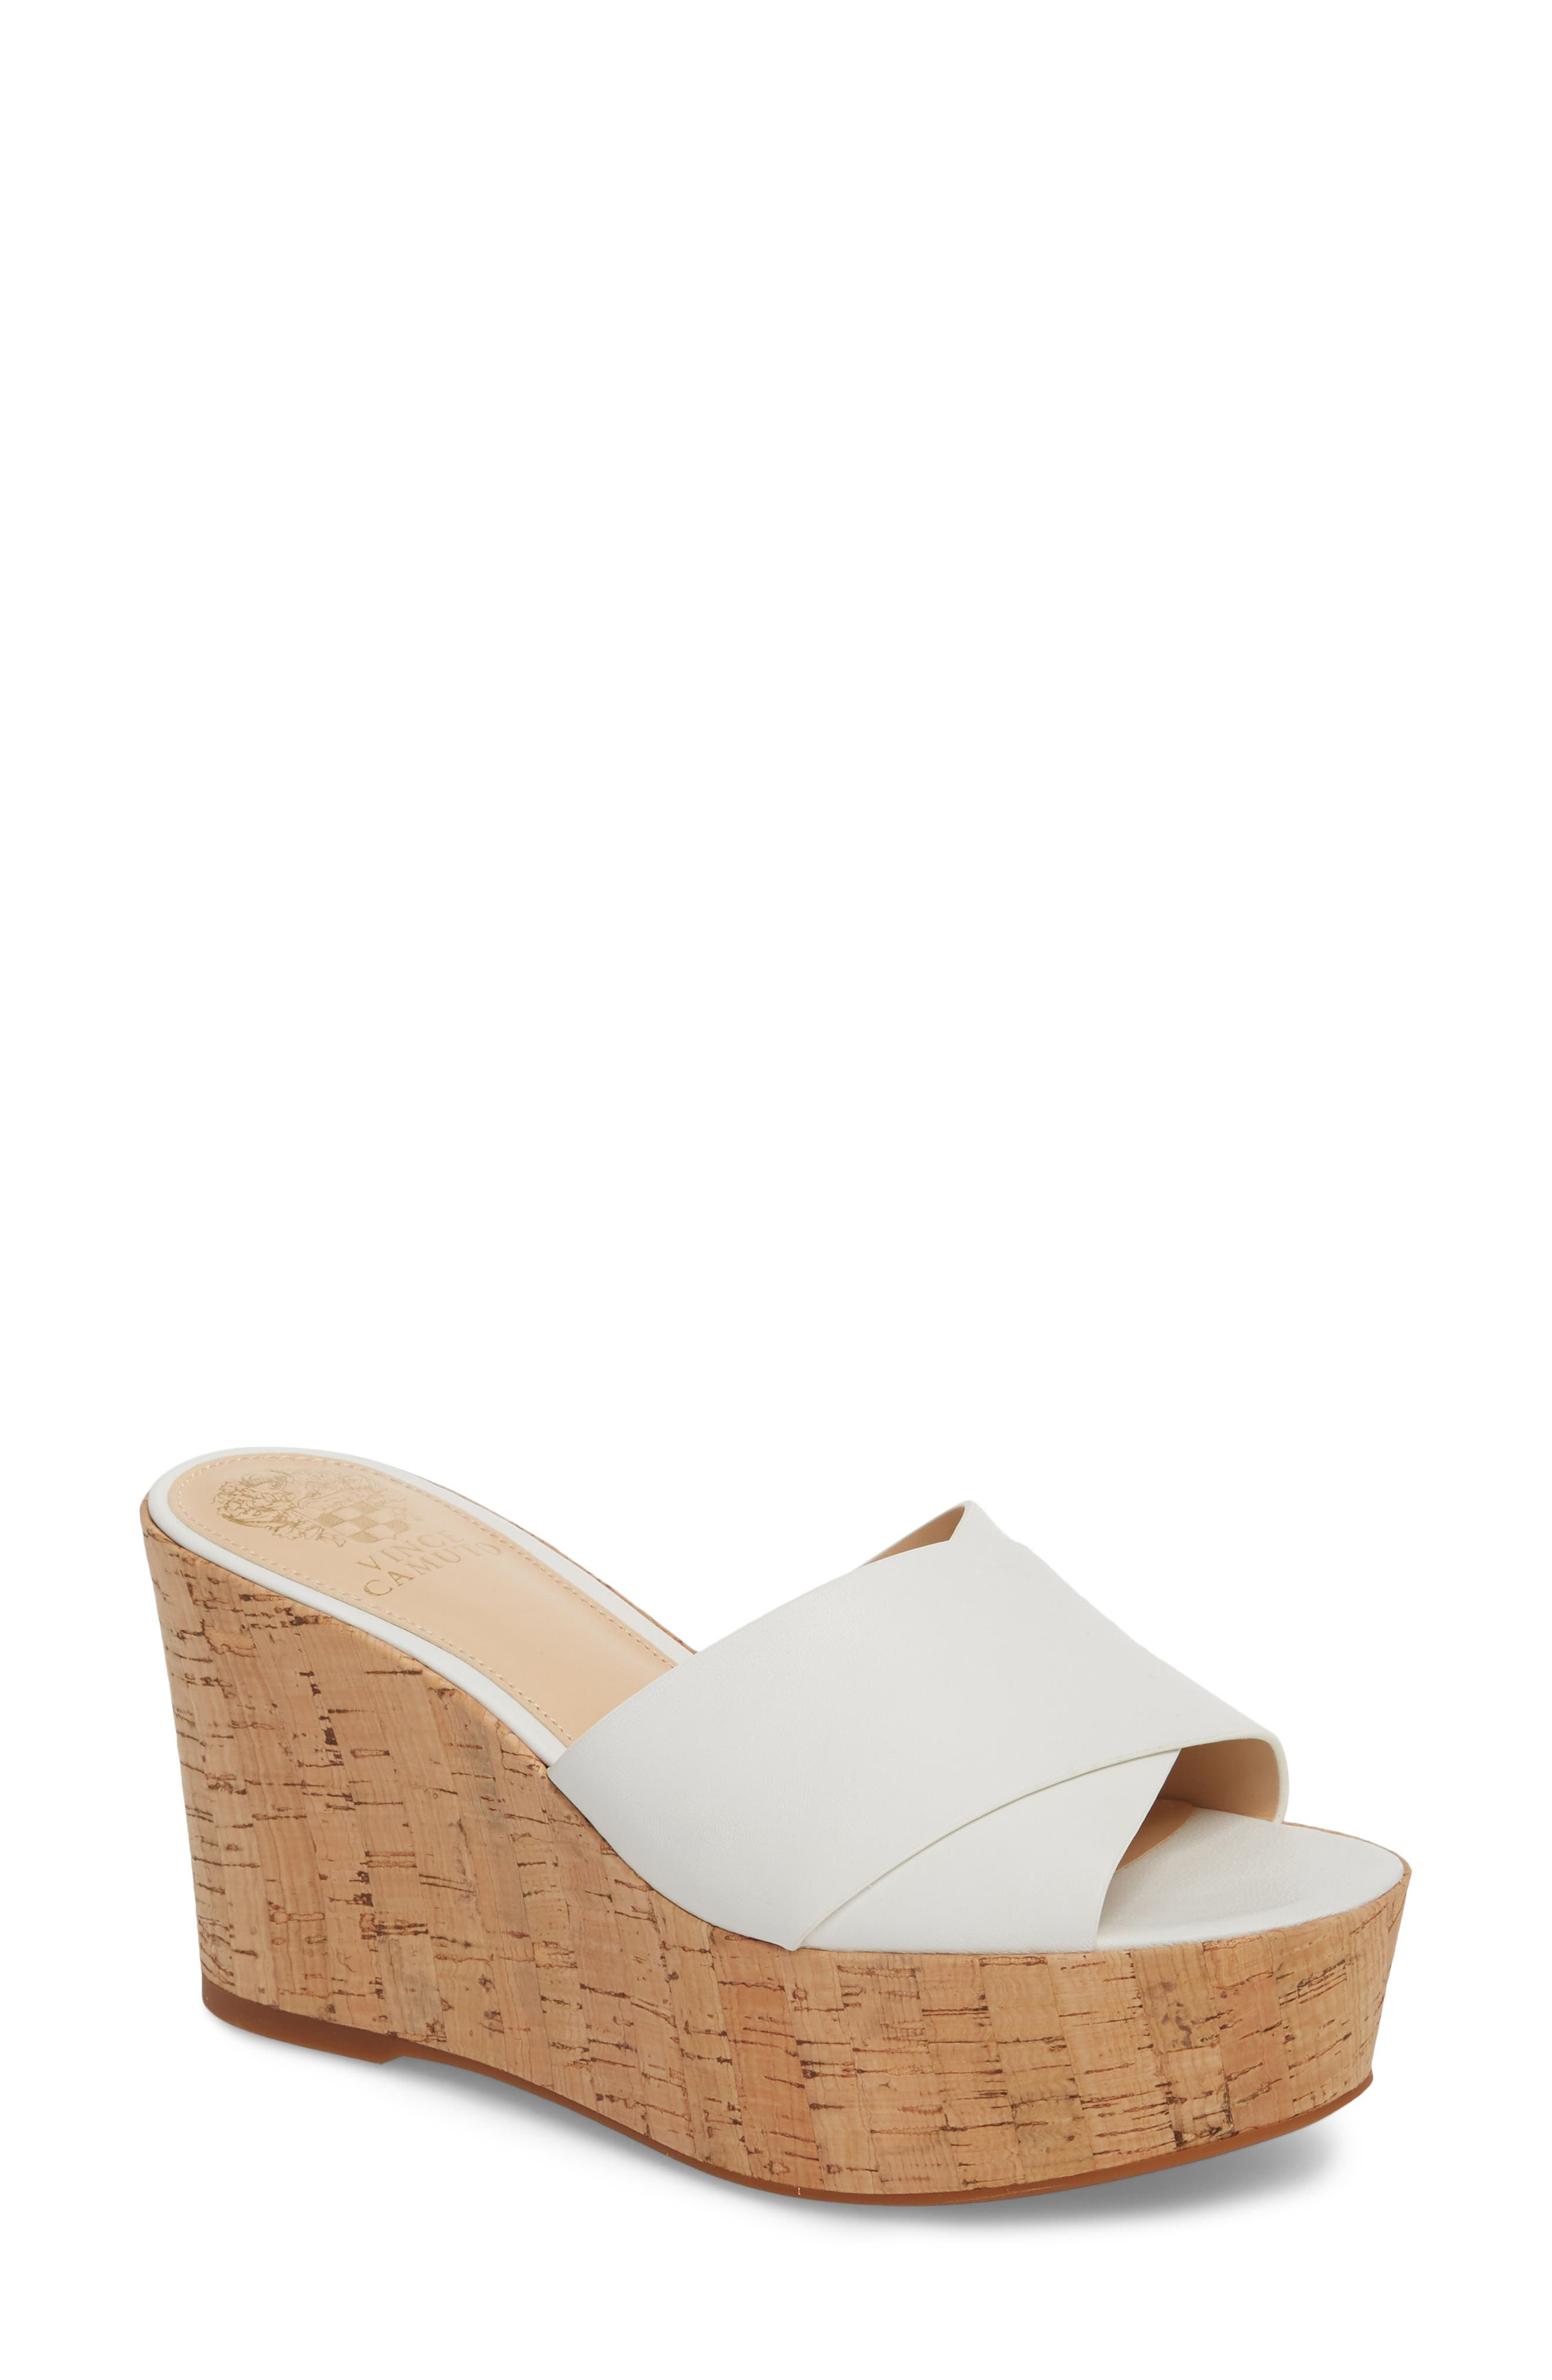 Kessina Platform Wedge Mule,                             Main thumbnail 1, color,                             PURE LEATHER